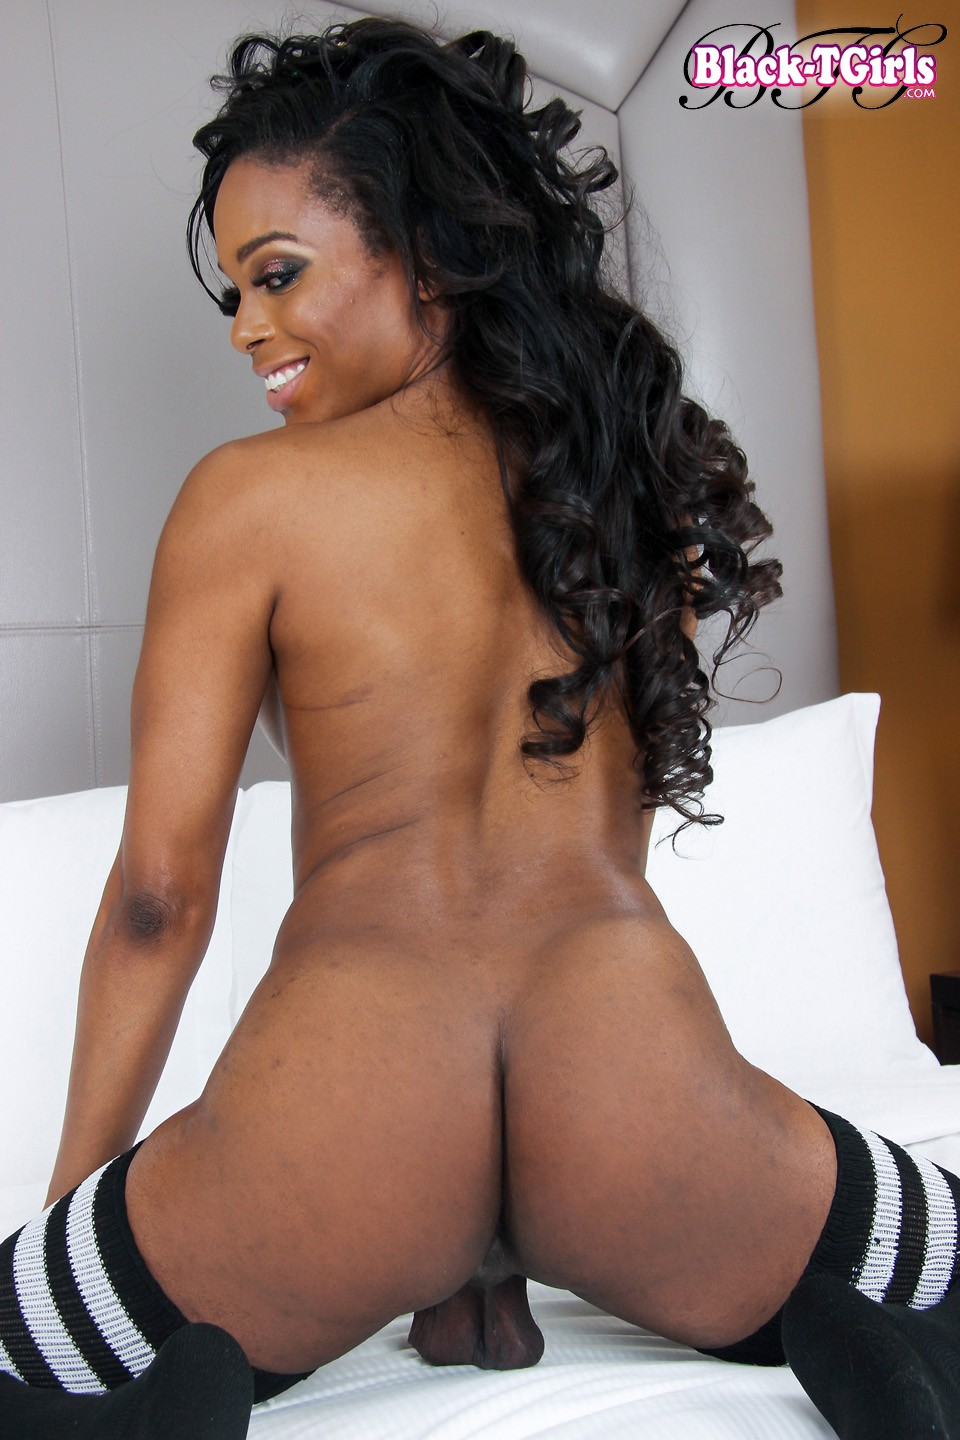 Gallery from Black TGirls